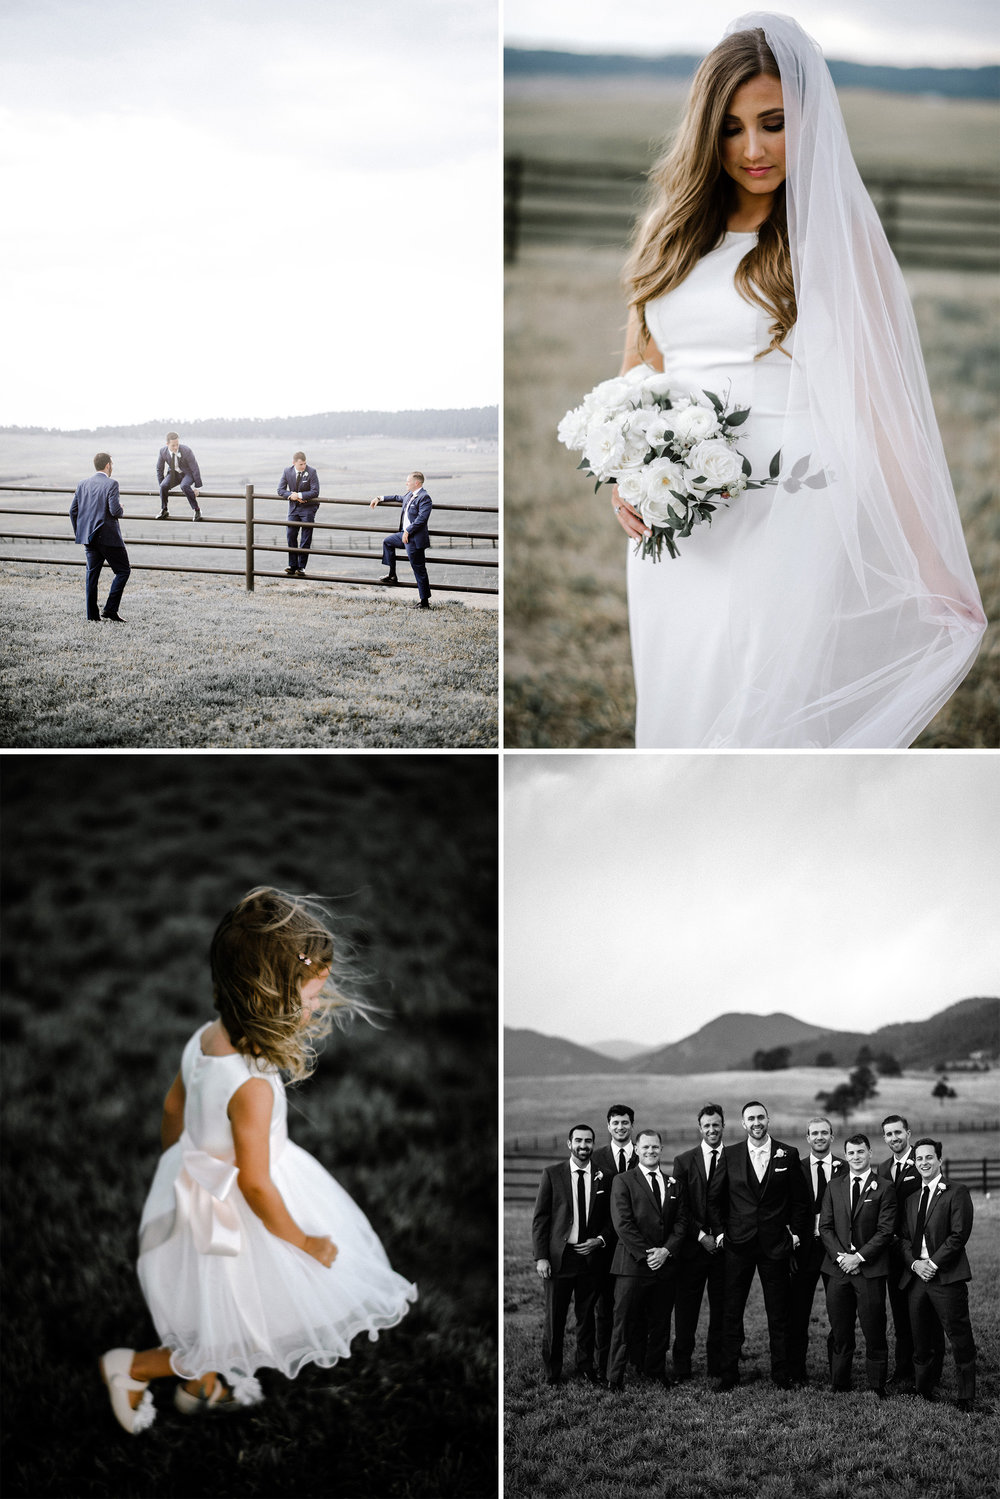 Clint Mann Jordan Behnken Rusty Wright Colorado Wedding Photography